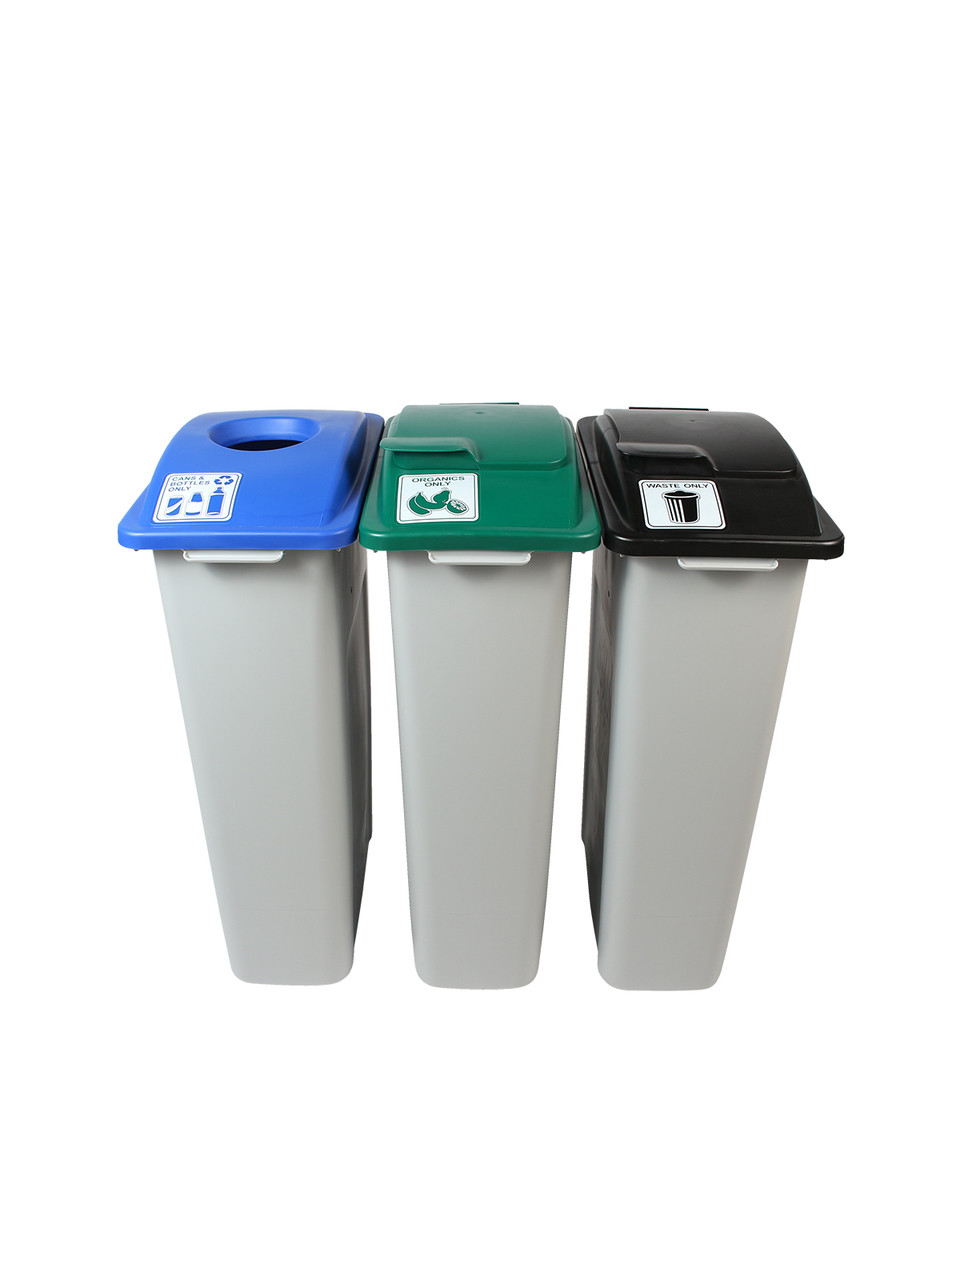 69 Gallon Simple Sort Skinny Recycle Bin Center 8105056-155 (Cans, Organics Lift Lid, Waste Lift Lid)